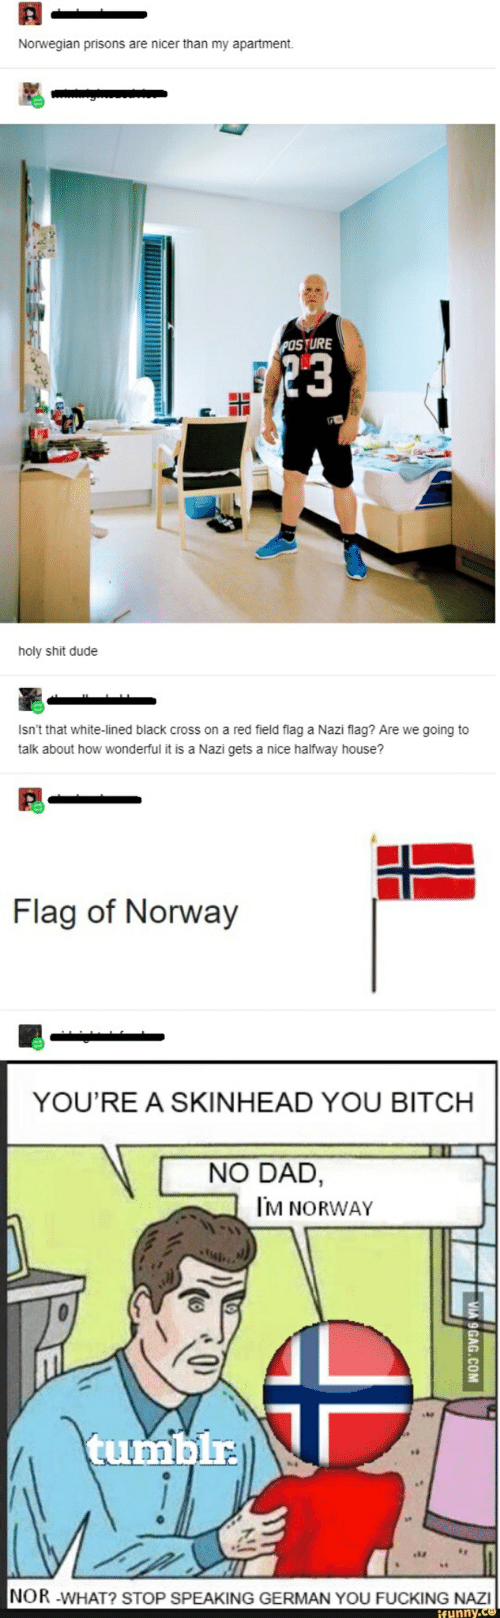 Bitch, Dad, and Dude: Norwegian prisons are nicer than my apartment.  POSTURE  holy shit dude  Isn't that white-lined black cross on a red field flag a Nazi flag? Are we going to  talk about how wonderful it is a Nazi gets a nice halfway house?  Flag of Norway  YOU'RE A SKINHEAD YOU BITCH  NO DAD,  M NORWAY  tumbir  NOR -WHAT? STOP SPEAKING GERMAN YOU FUCKING NAZI  funny